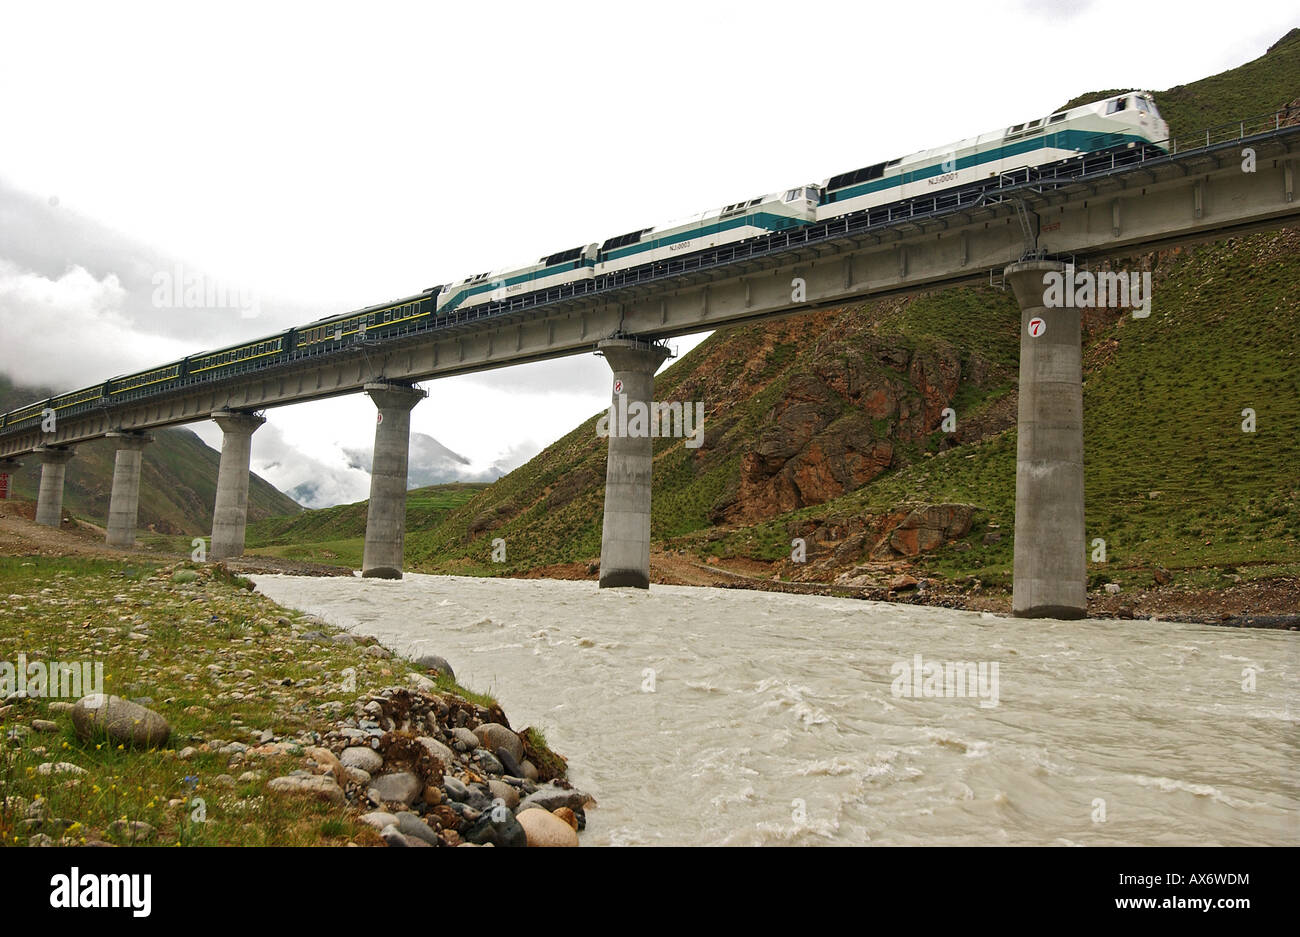 A train passes over a bridge non the Tibet railway in the Tolung Valley, which opened in July 2006. Tibet train Stock Photo